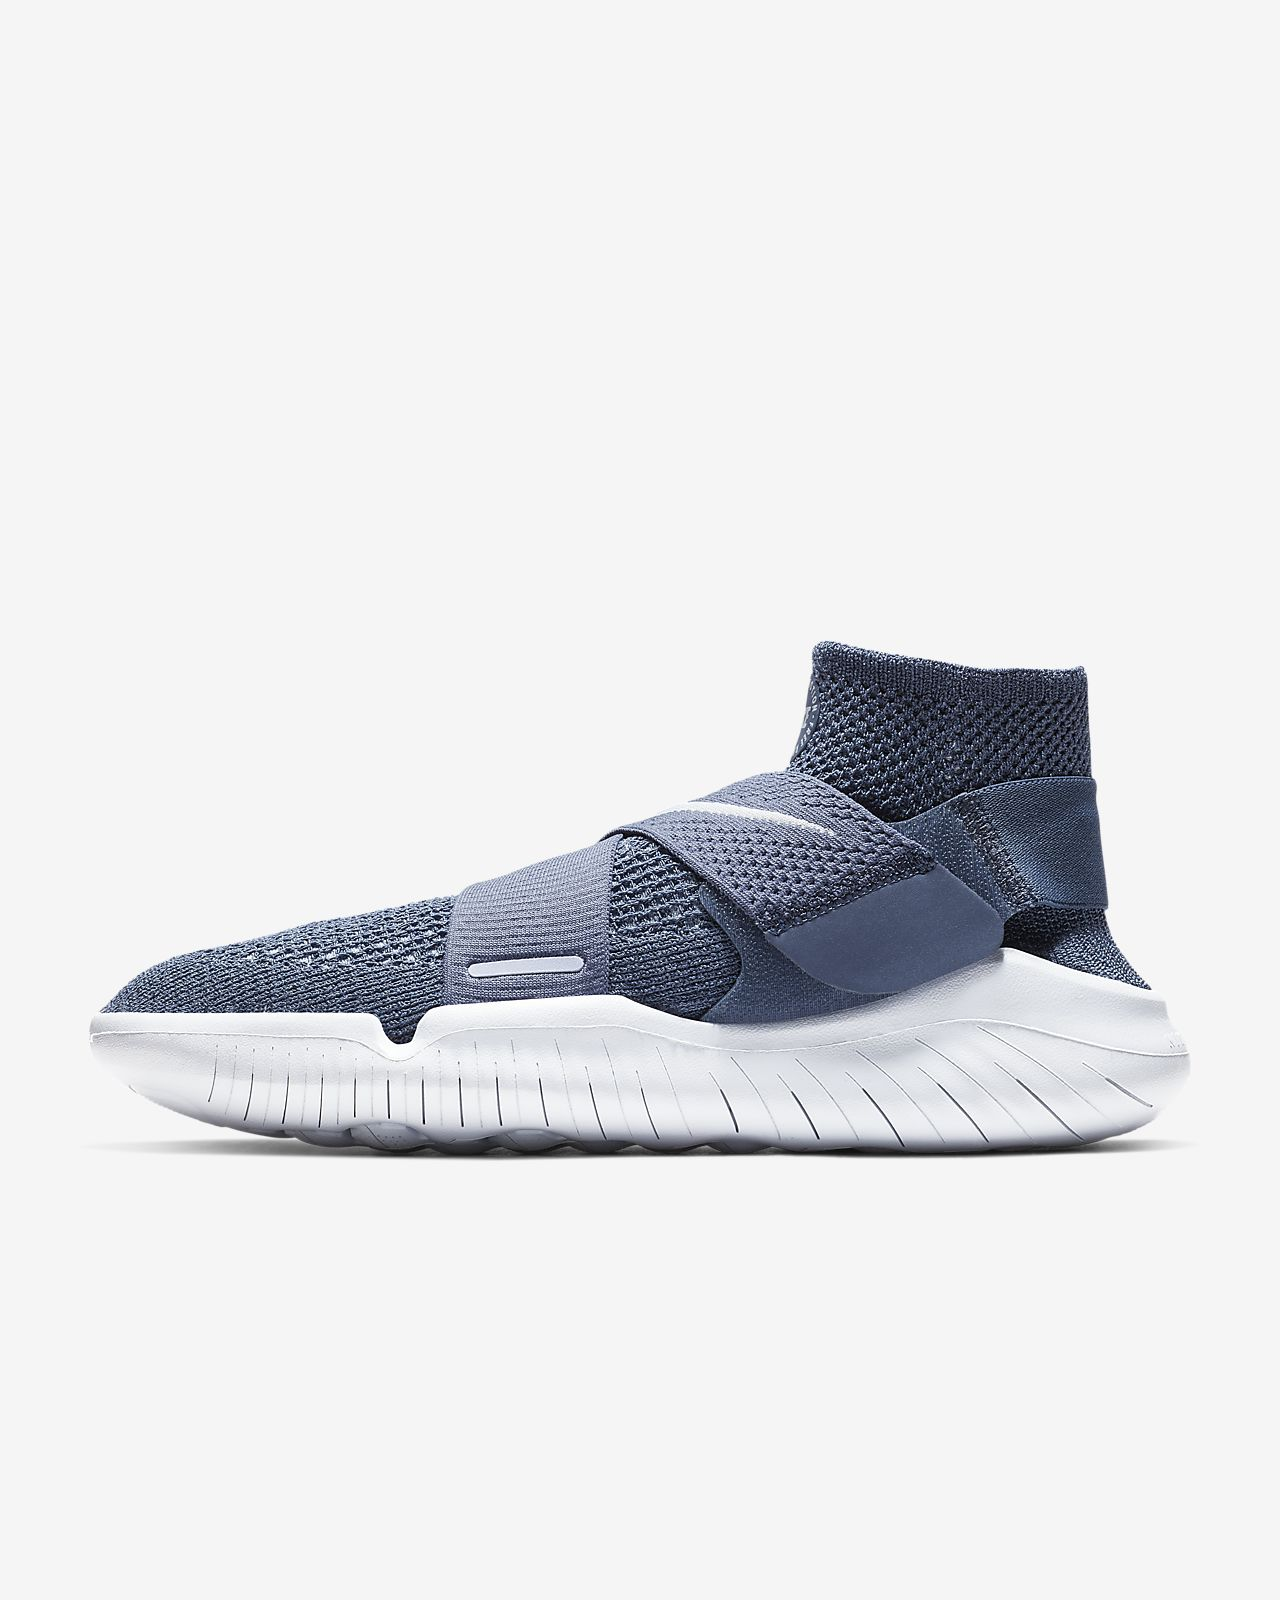 46c32d42947 Men s Running Shoe. Nike Free RN Motion Flyknit 2018